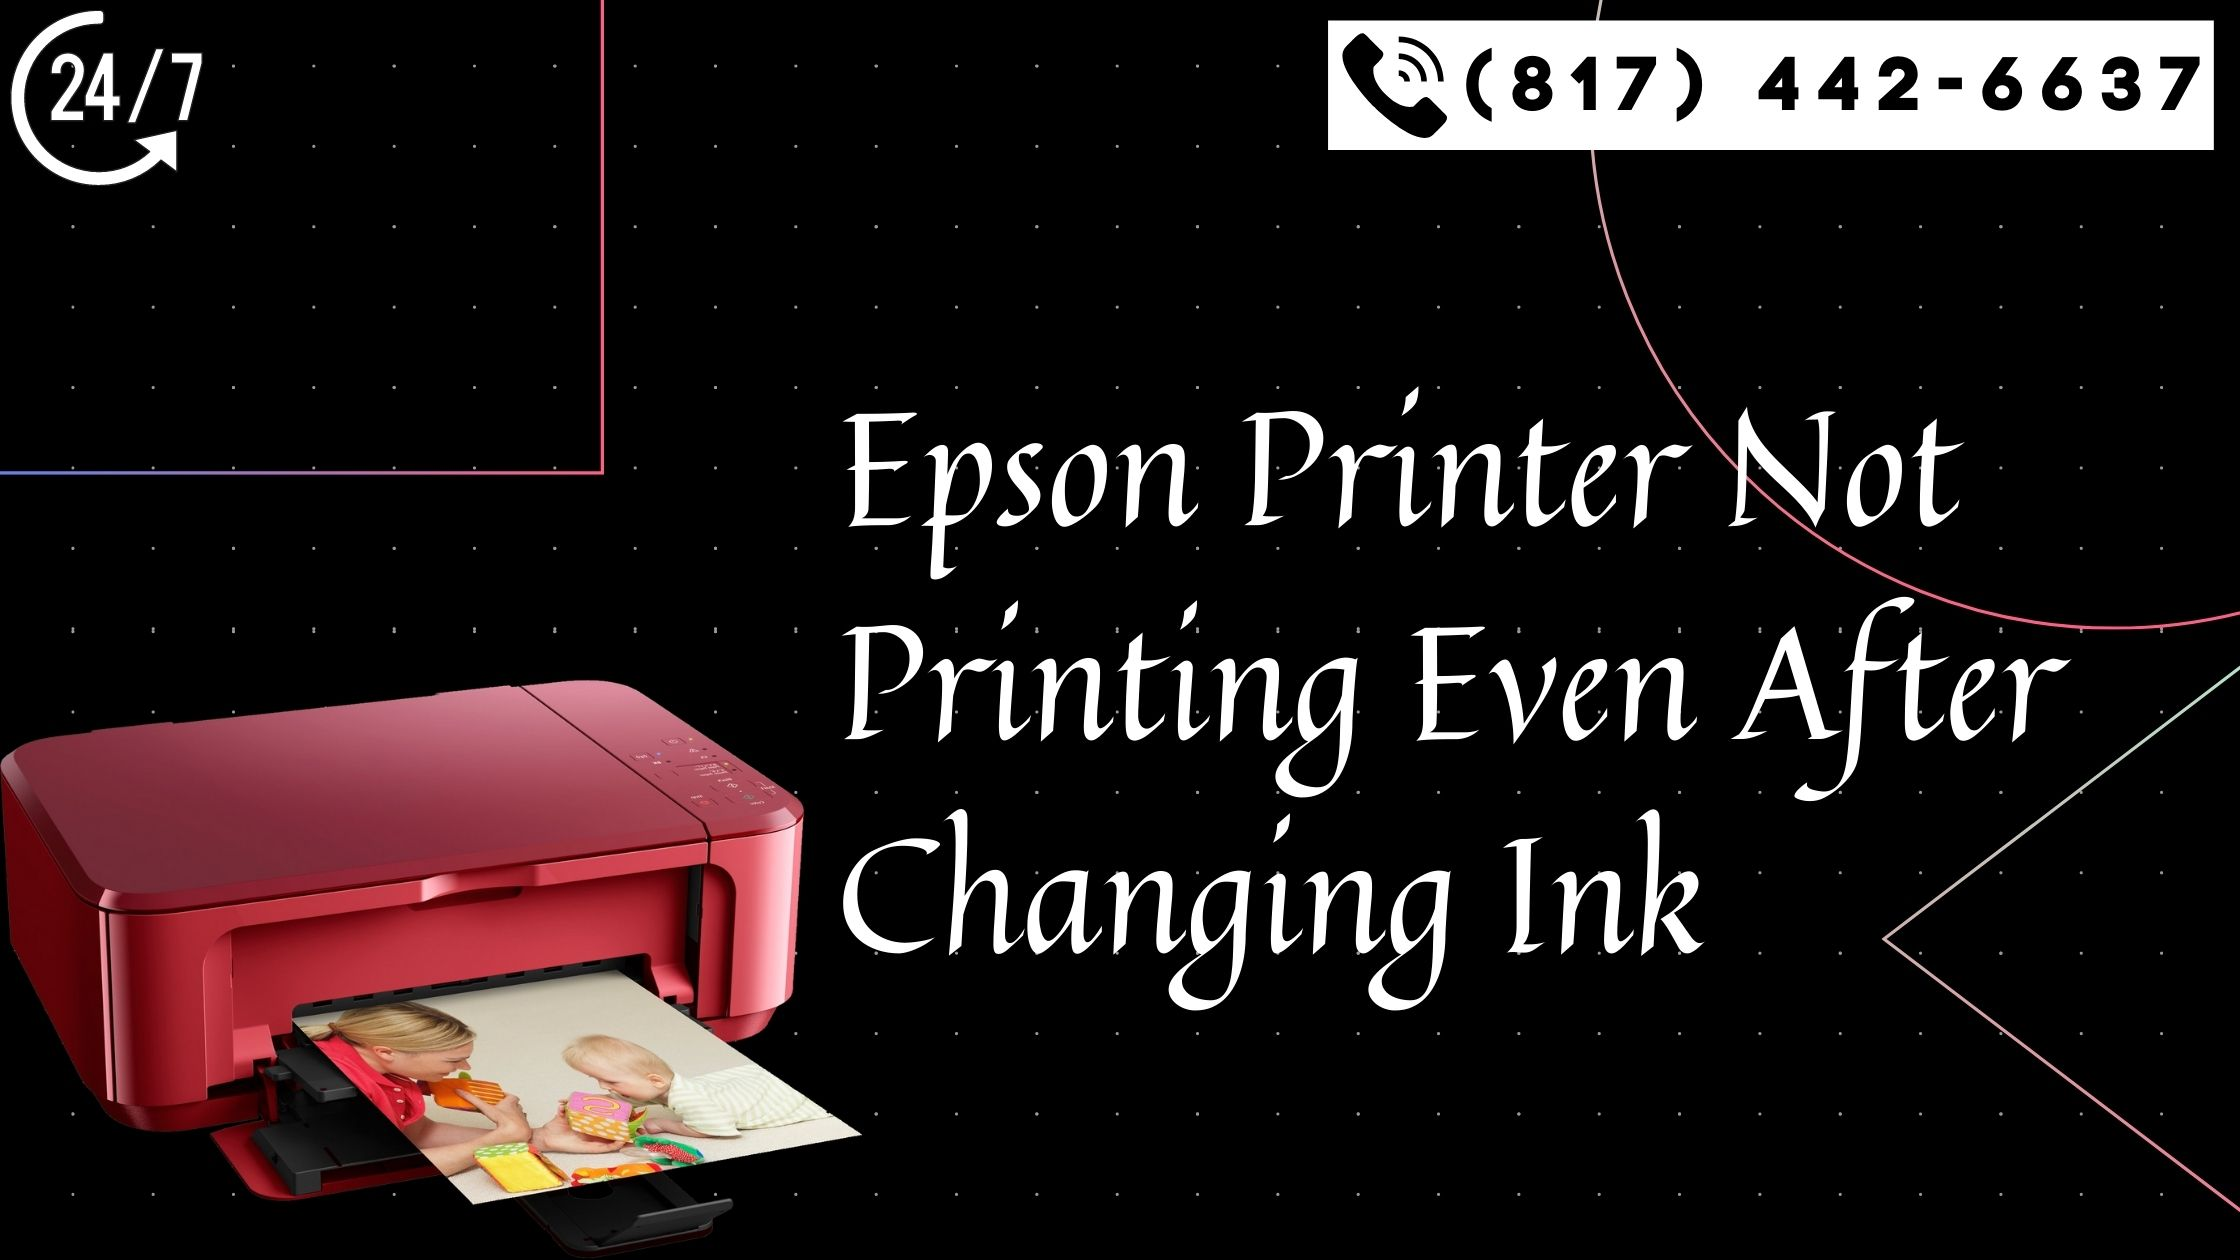 Epson Printer Not Printing Even After Changing Ink